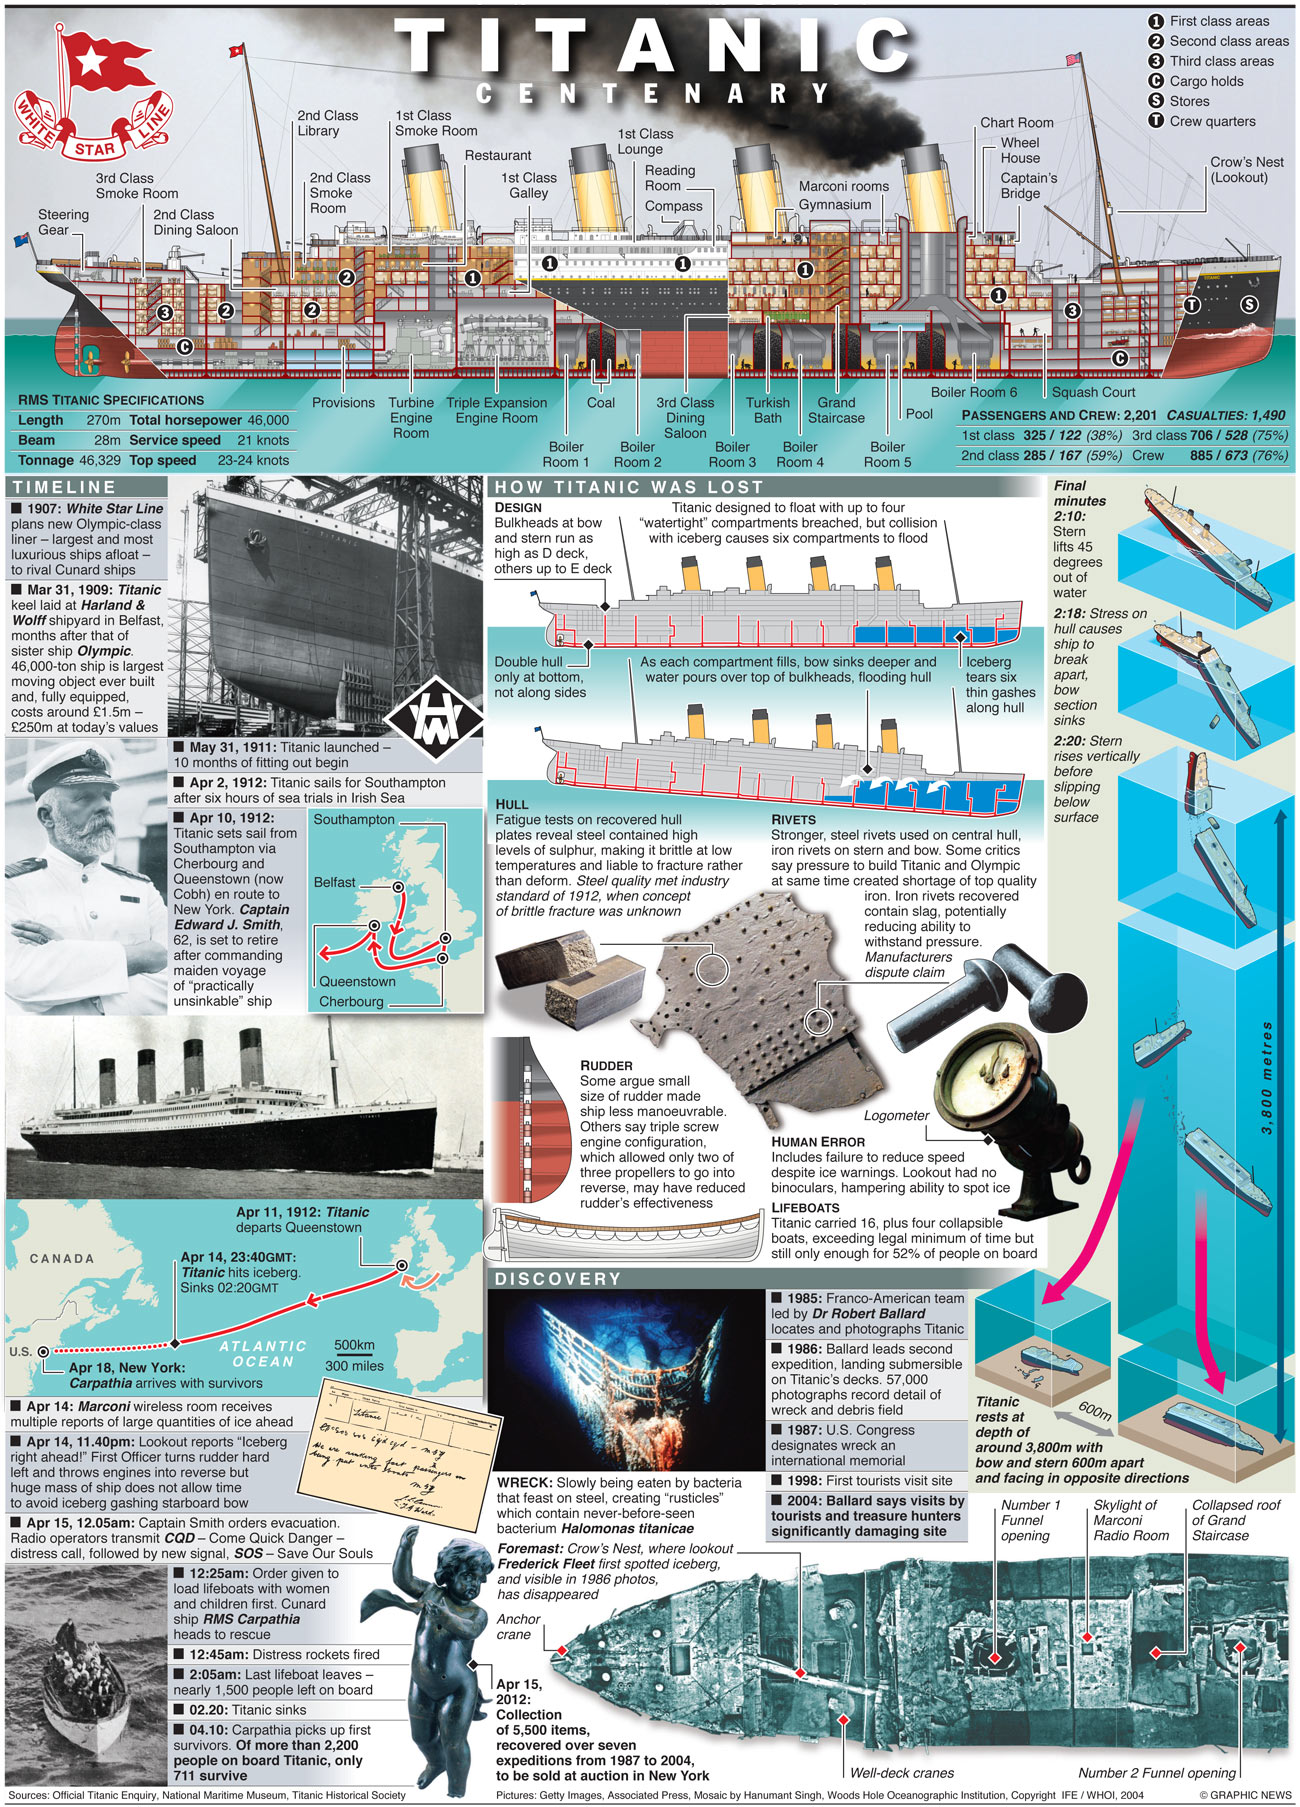 Graphic news: Titanic